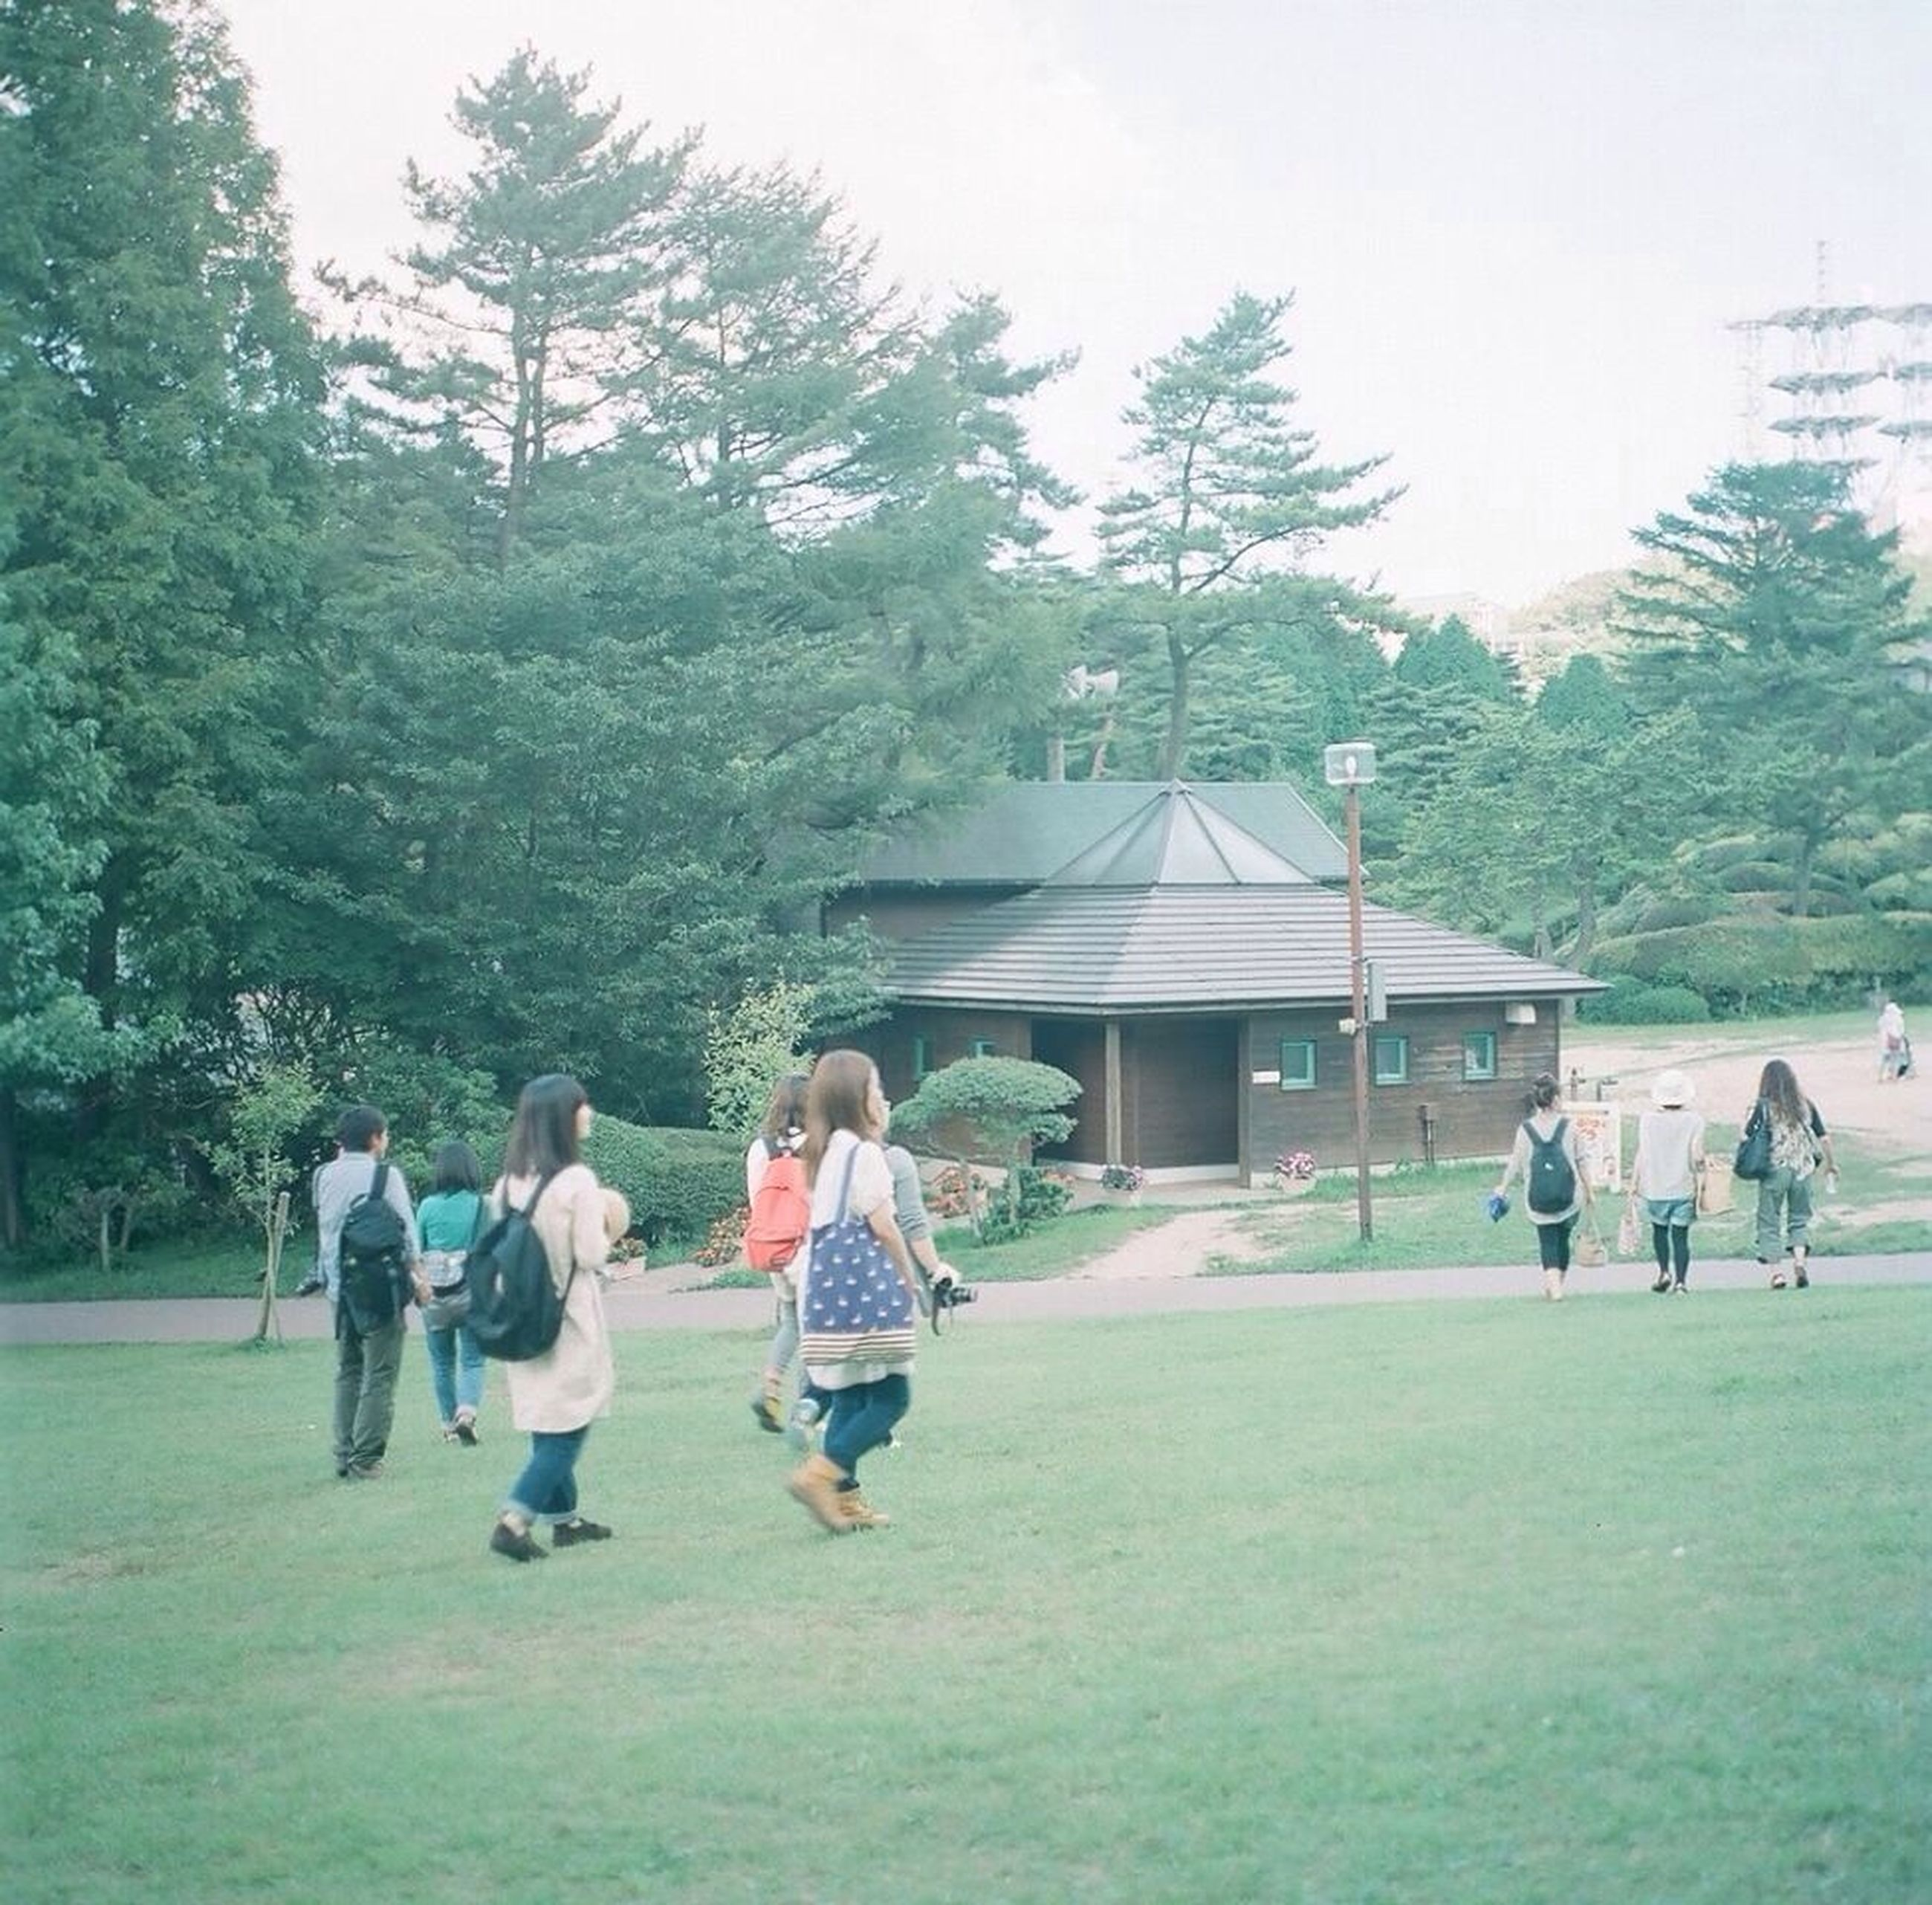 tree, men, lifestyles, leisure activity, person, large group of people, grass, green color, full length, togetherness, rear view, enjoyment, walking, medium group of people, casual clothing, park - man made space, sitting, day, mixed age range